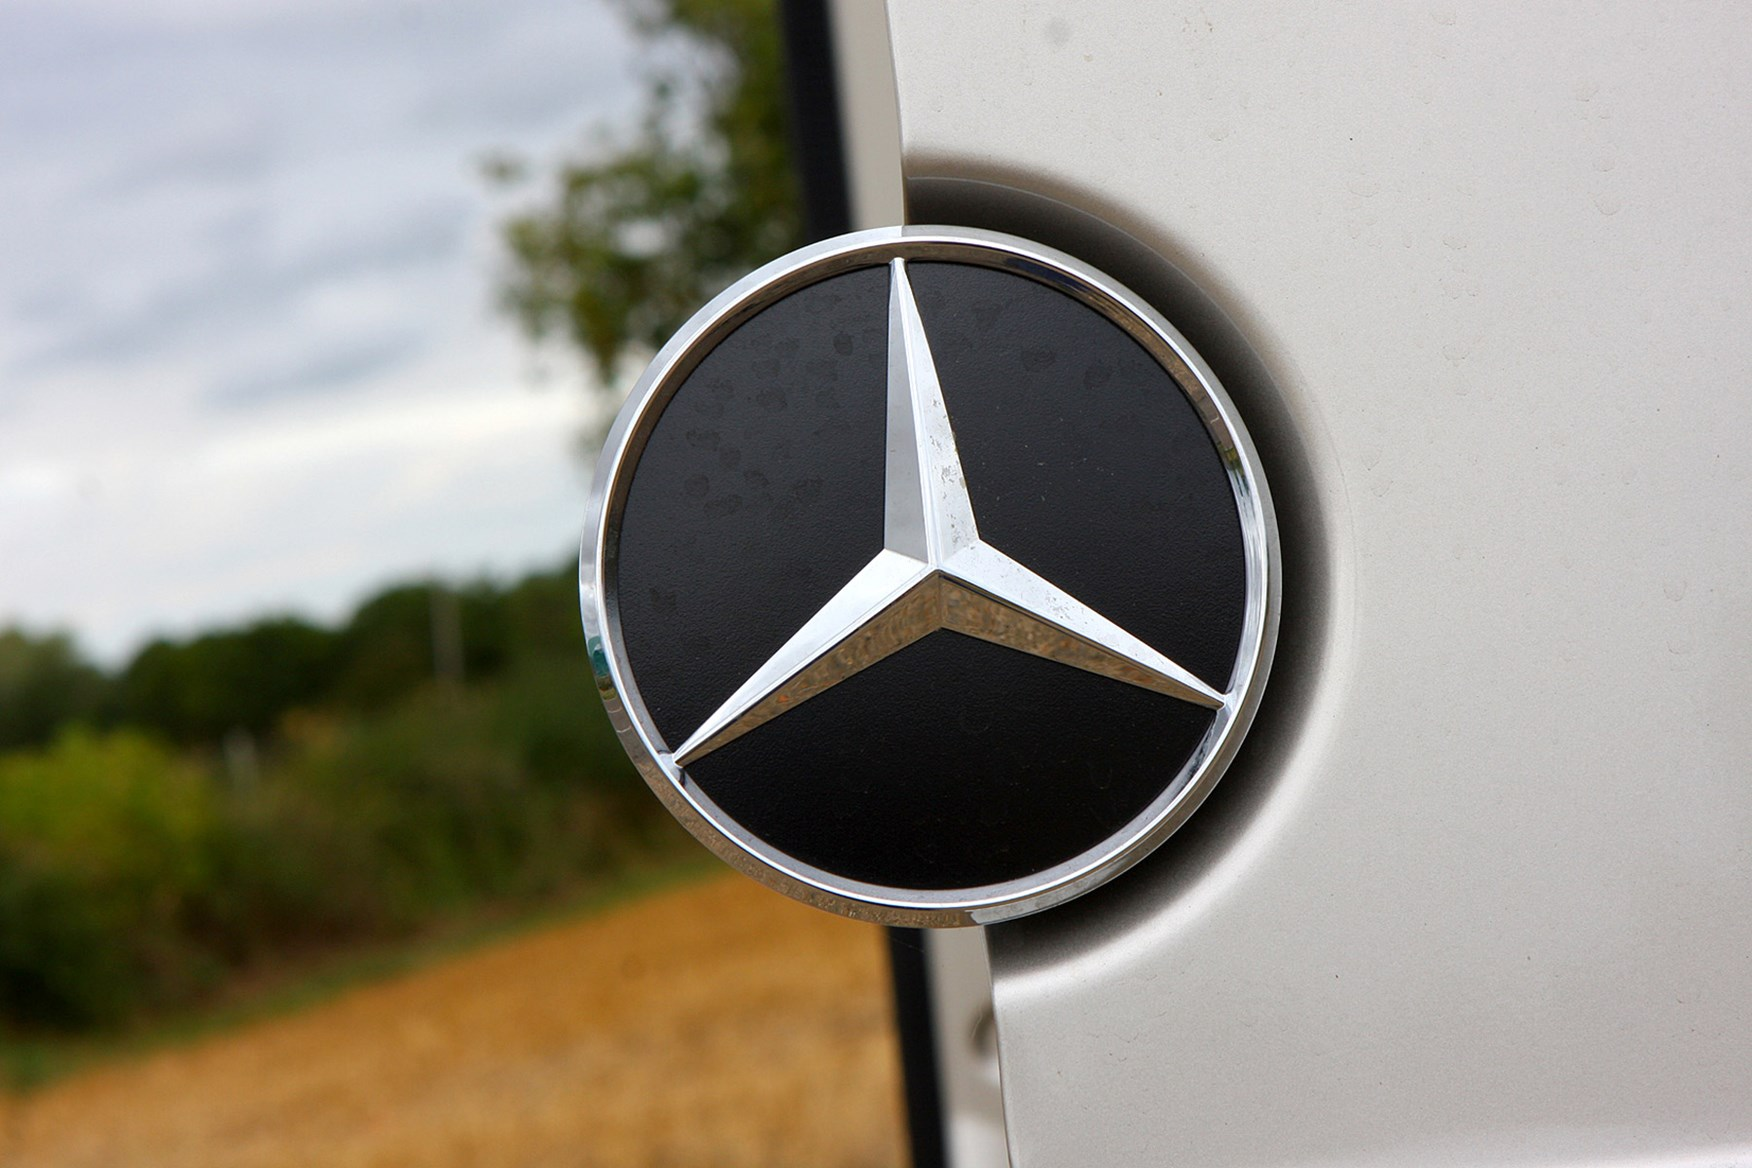 Mercedes-Benz Sprinter full review on Parkers Vans - Mercedes-Benz detail